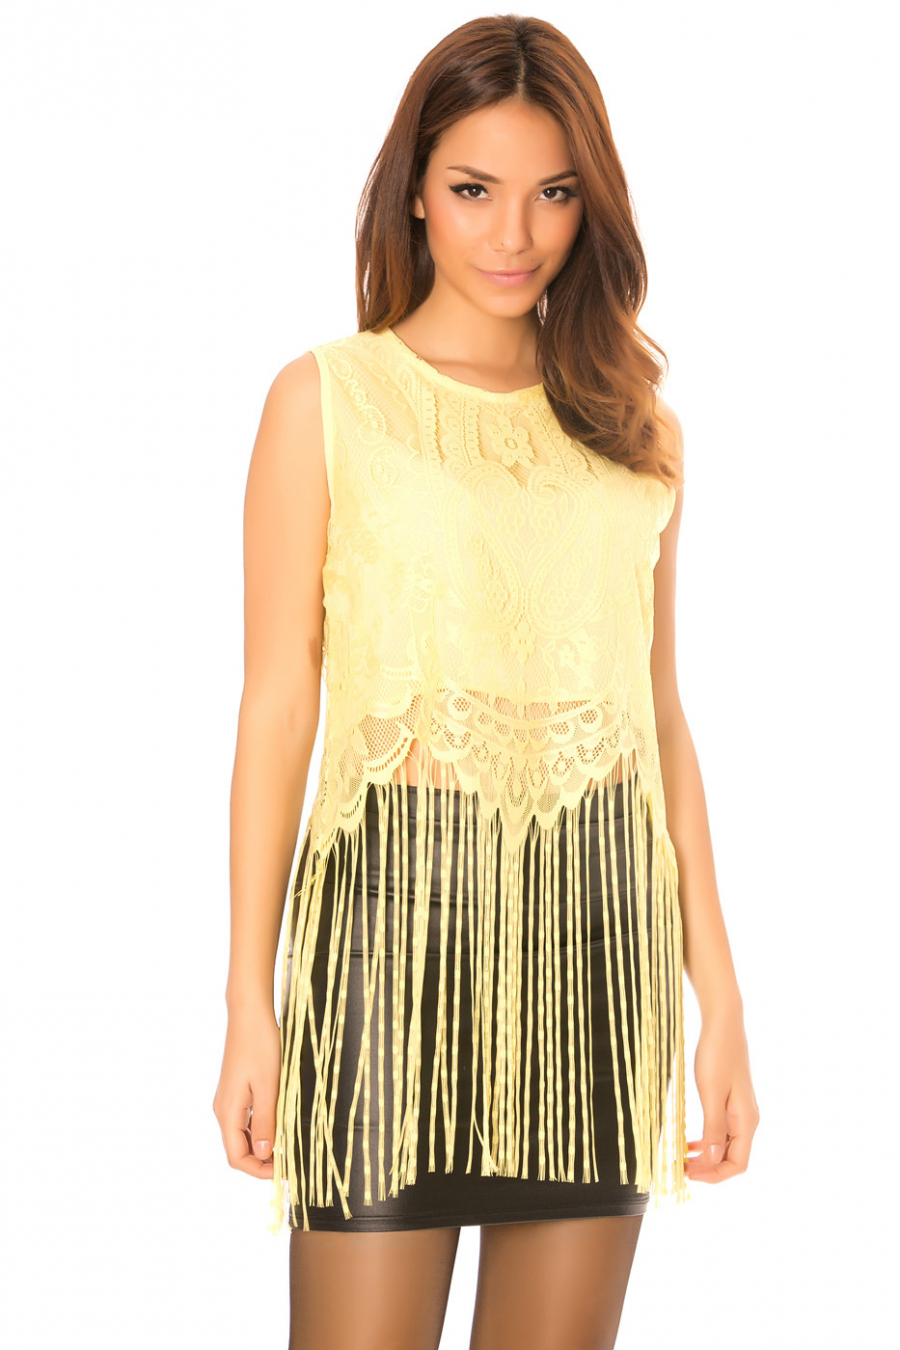 Yellow lace top with long fringes. C-267